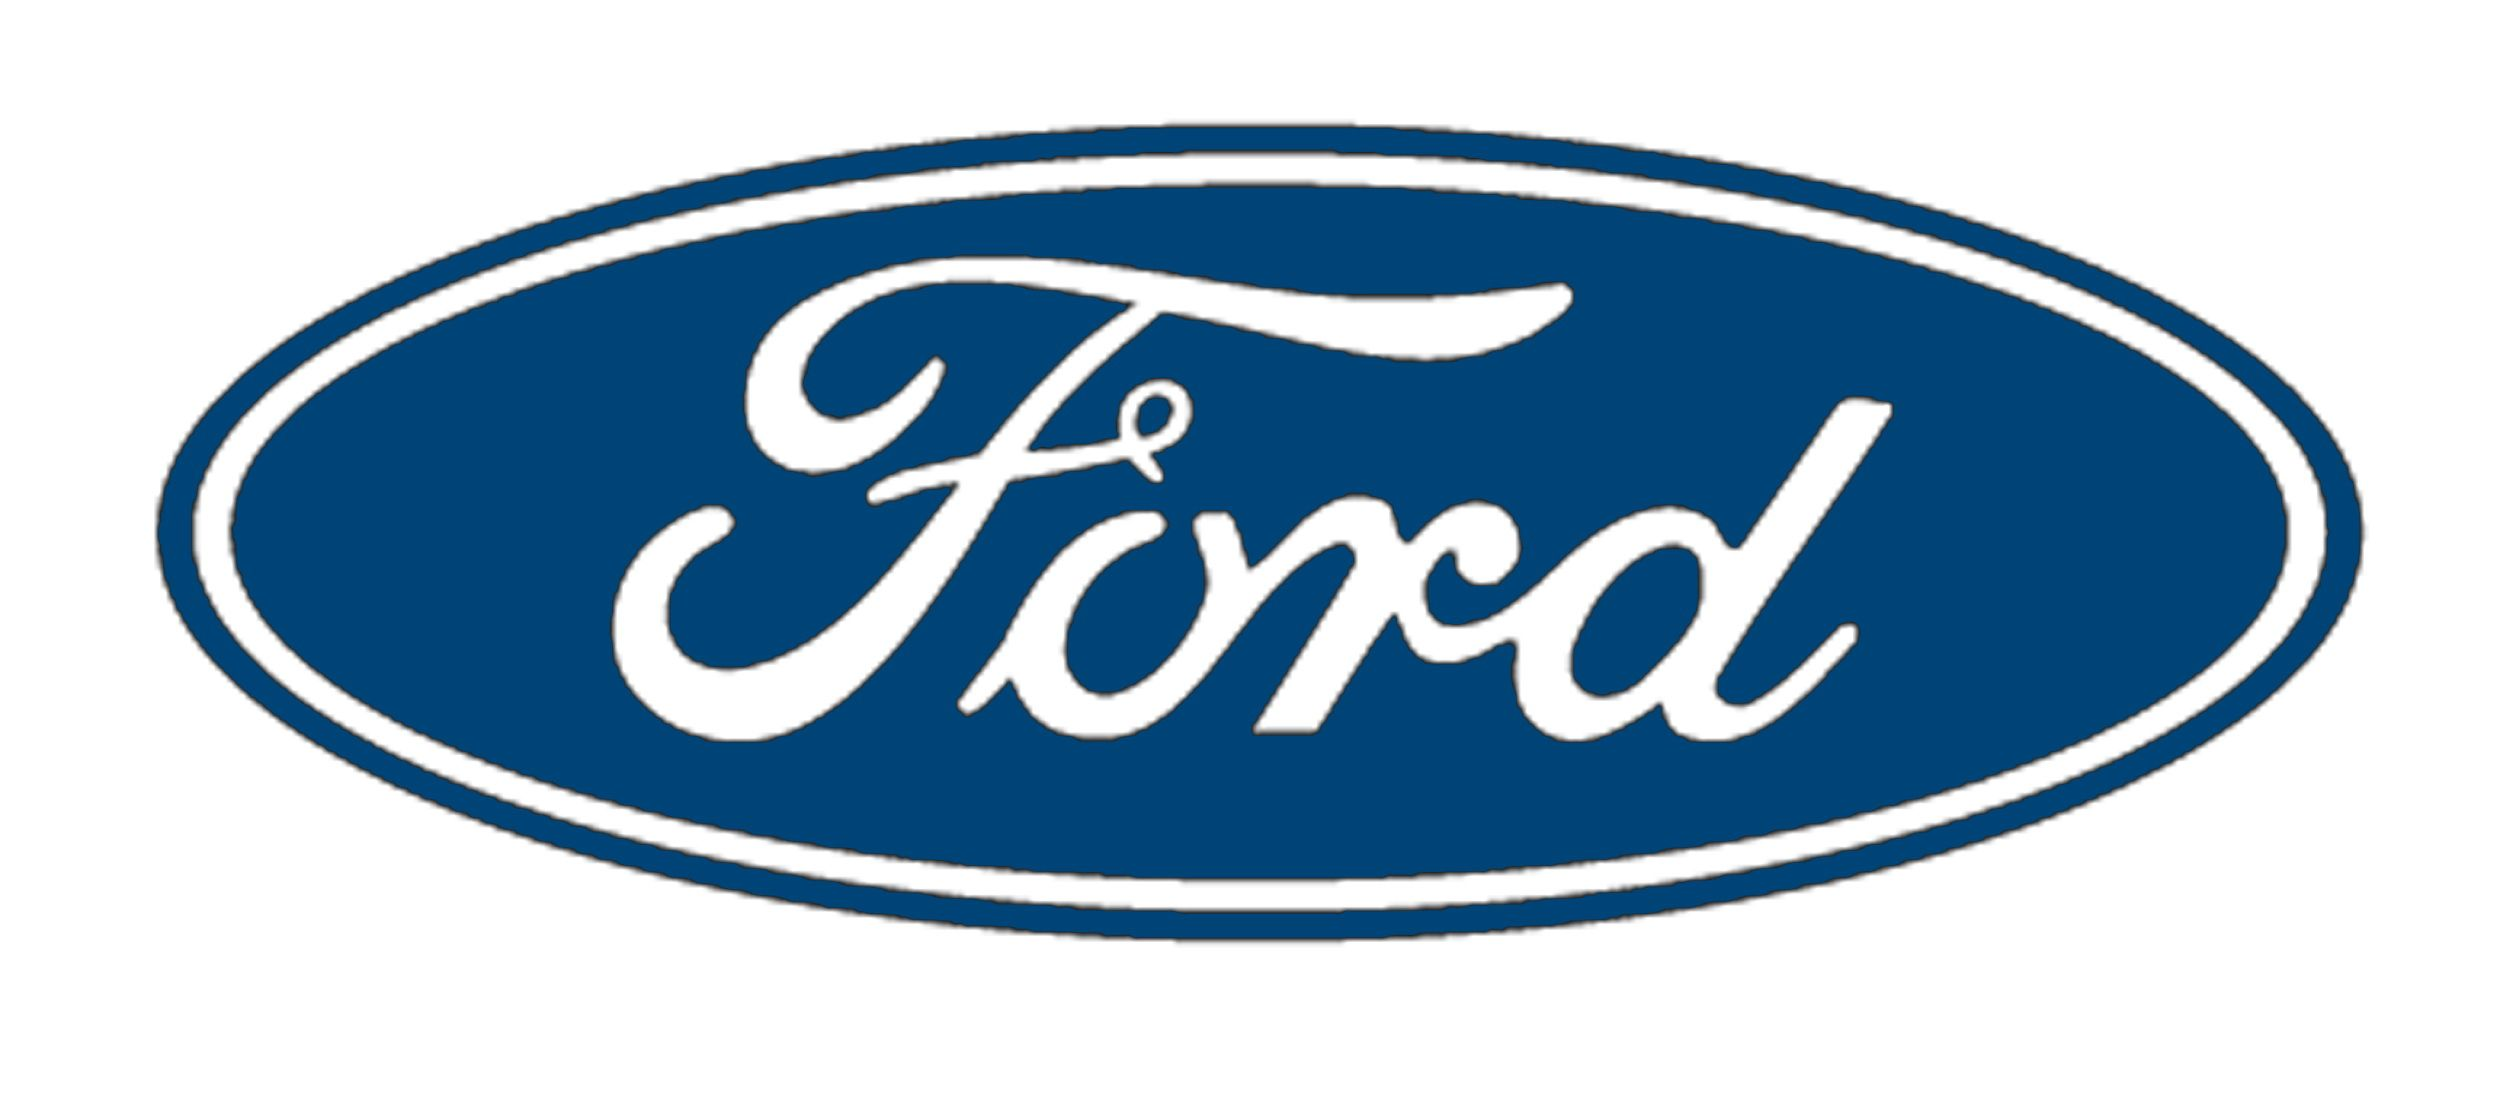 Blue Oval Swirl Logo - Ford Logo, Ford Car Symbol Meaning and History | Car Brand Names.com